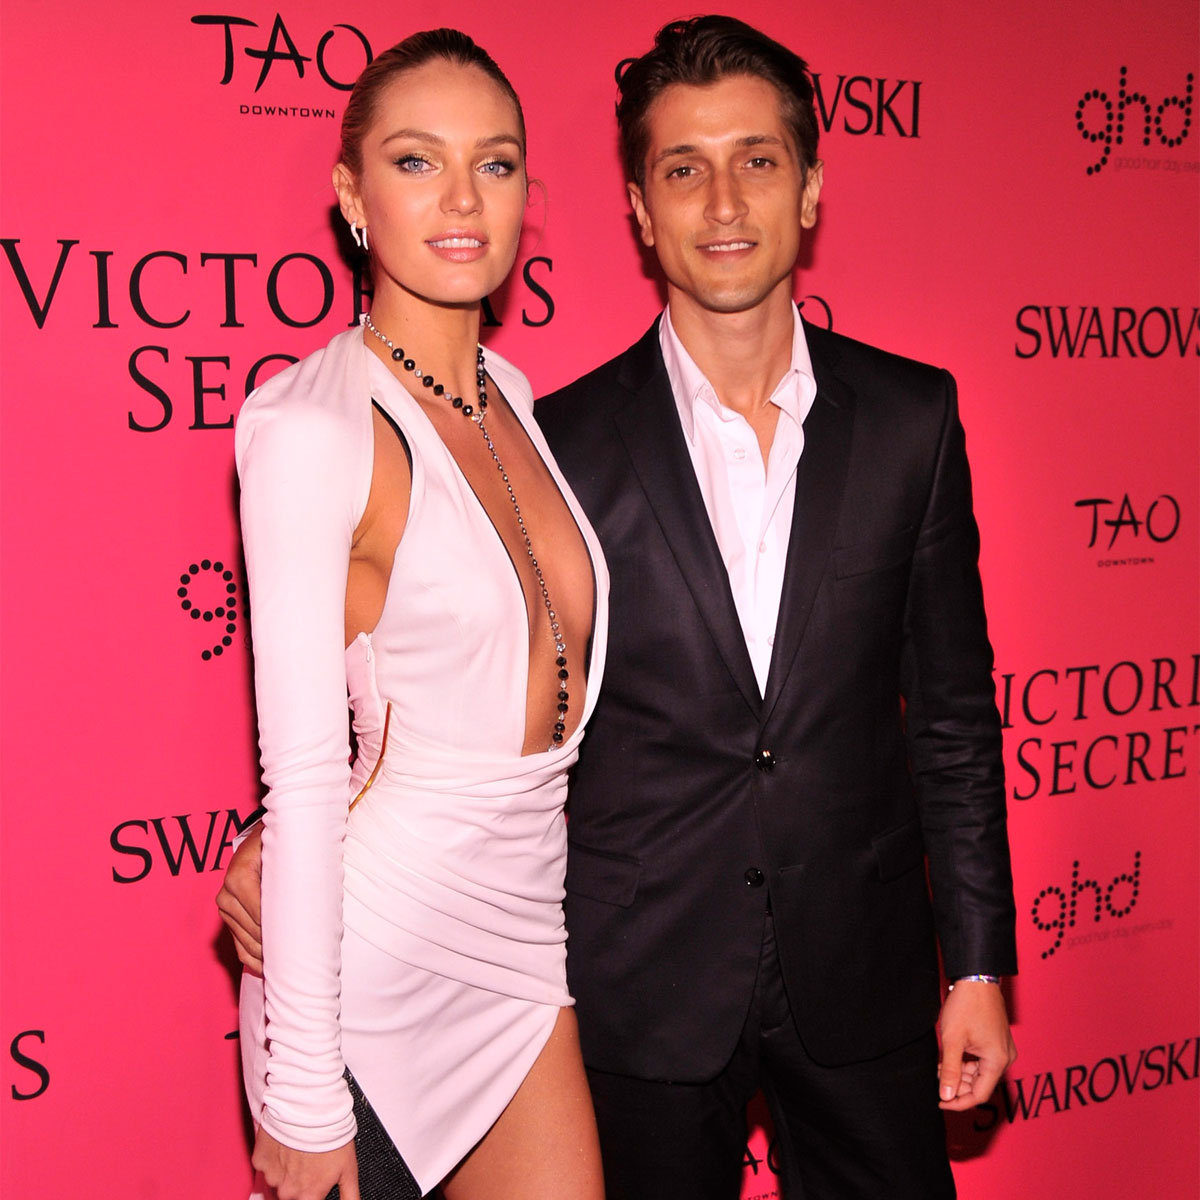 """kings of leon singer dating victorias secret model The victoria's secret fashion show will be shown on tuesday, nov 28 at 10 pm et on cbs """"merging fashion, fantasy and entertainment, the lingerie runway show will include pink carpet interviews, model profiles, a behind-the-scenes look at the making of the show and musical performances that will be announced at a later date,."""